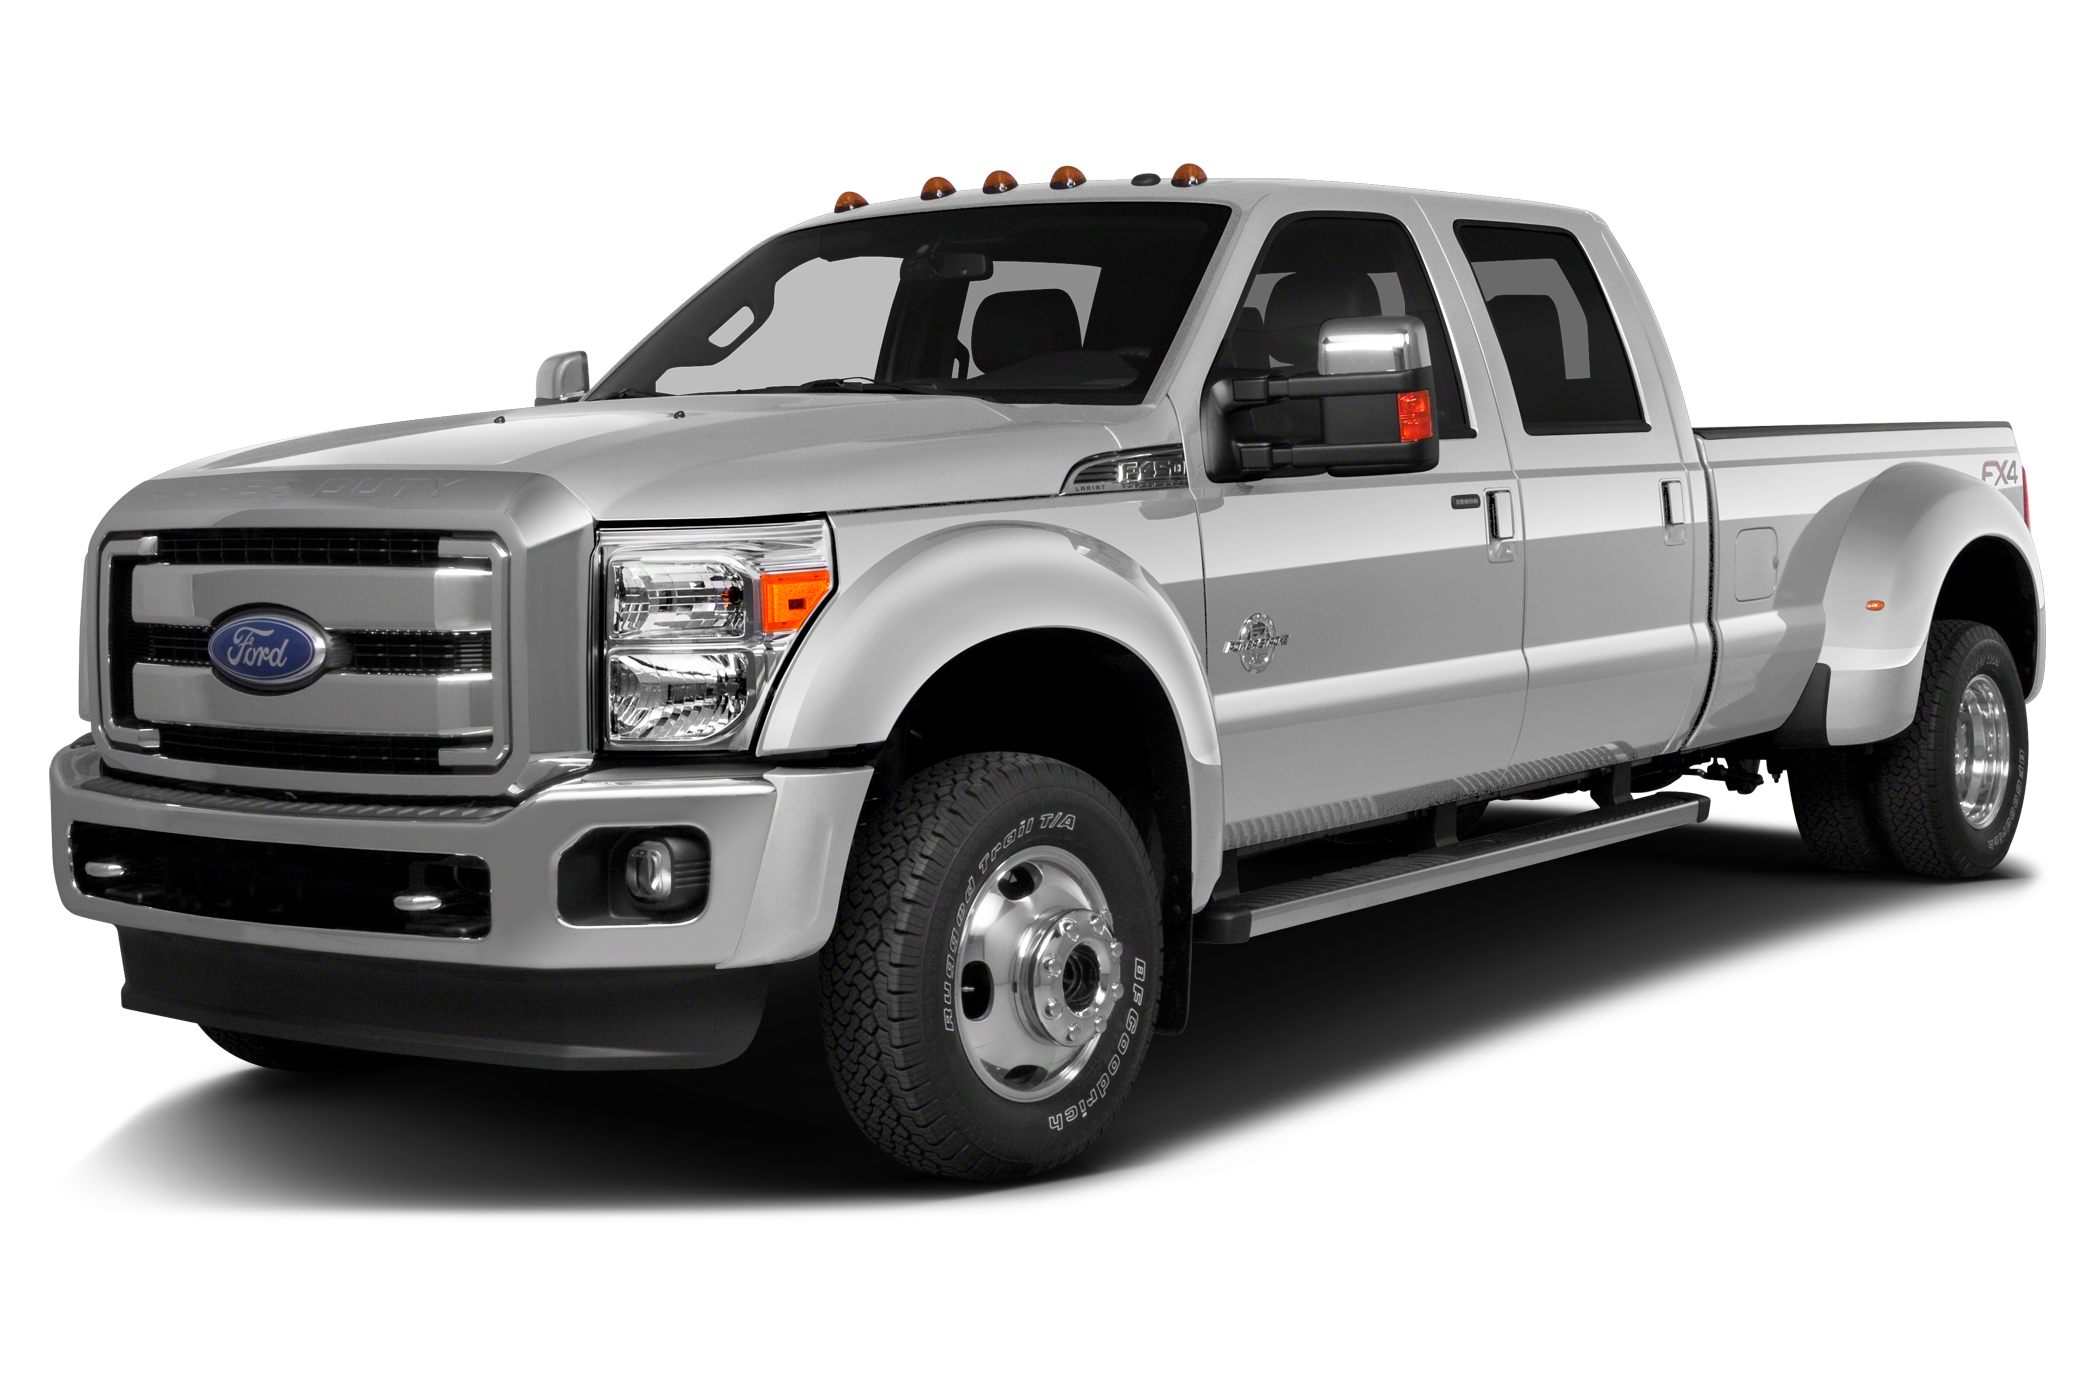 2016 Ford F-350 Super Duty You know your business and what it takes to grow its bottom line like